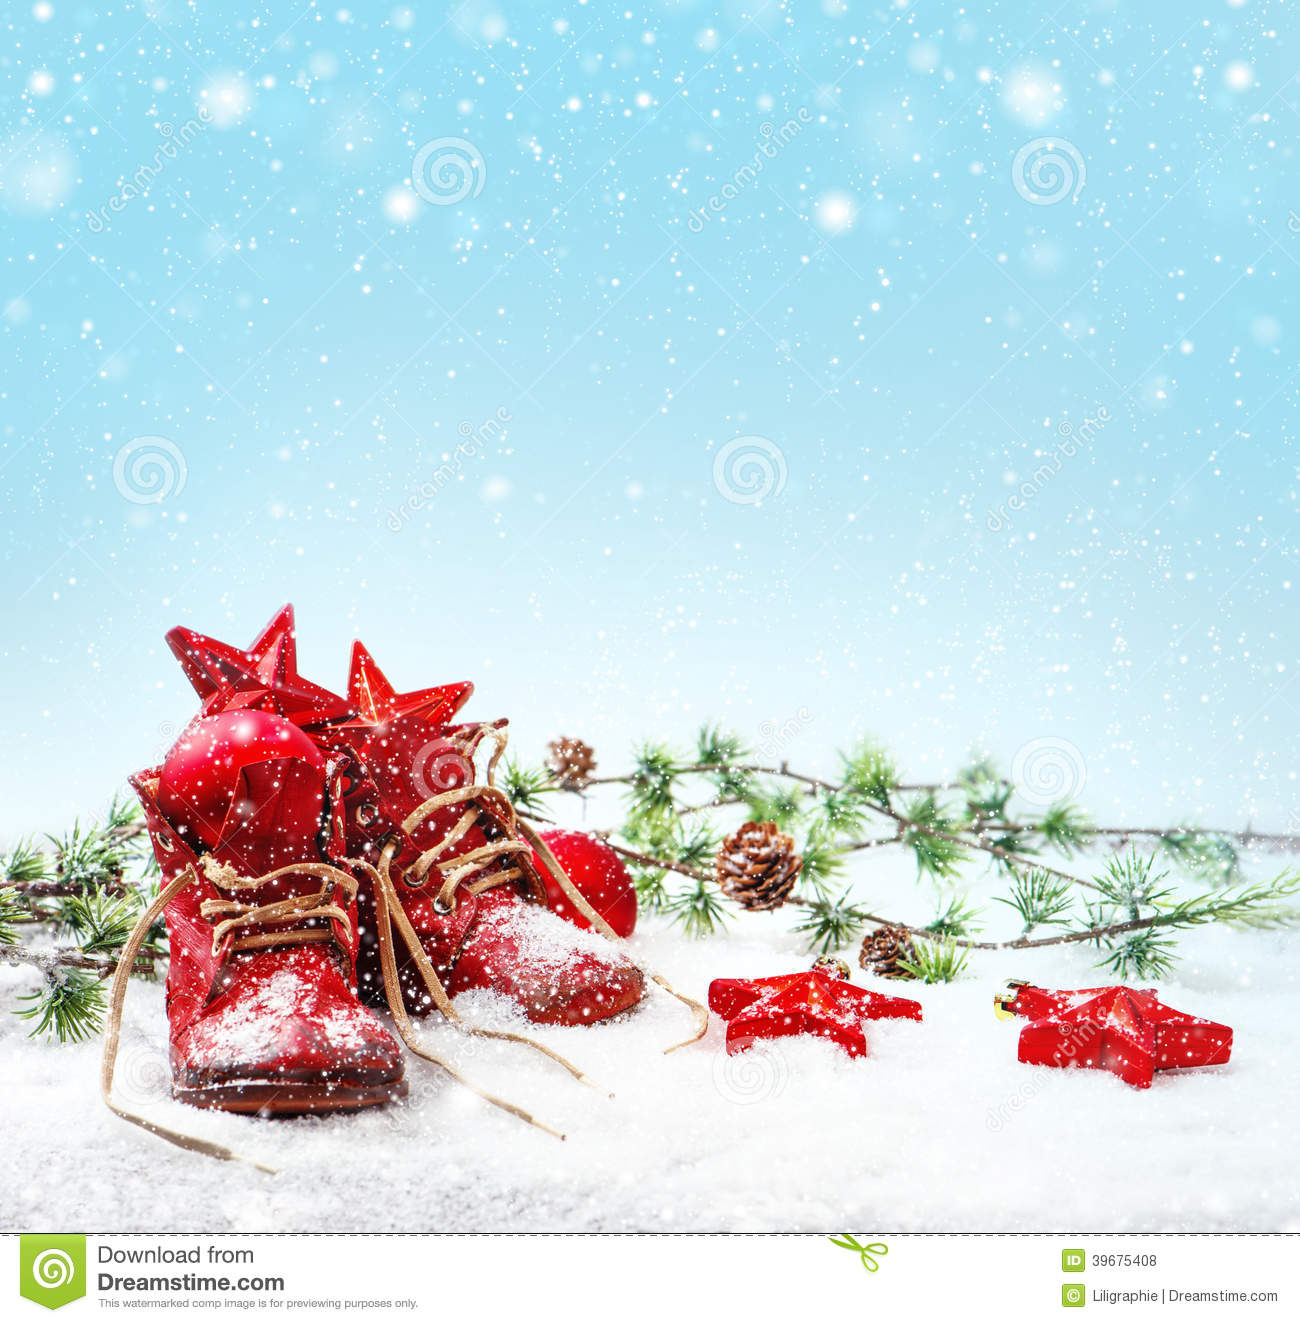 download nostalgic christmas decoration with antique baby shoe stock photo image of background snowflakes